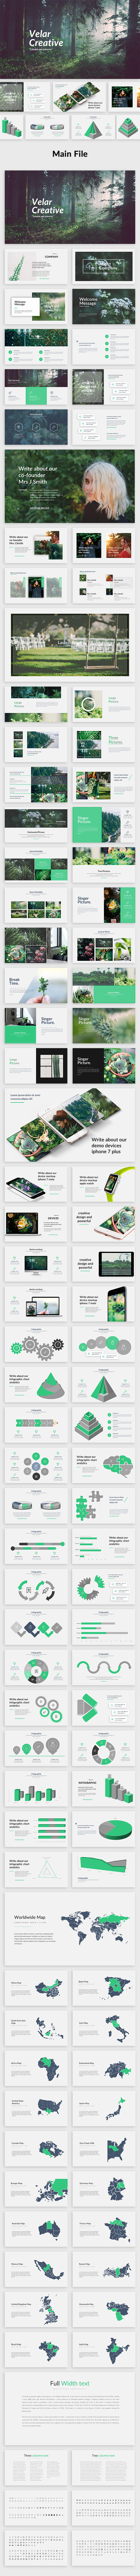 Velar - Creative Google Slide Template - Google Slides Presentation Templates